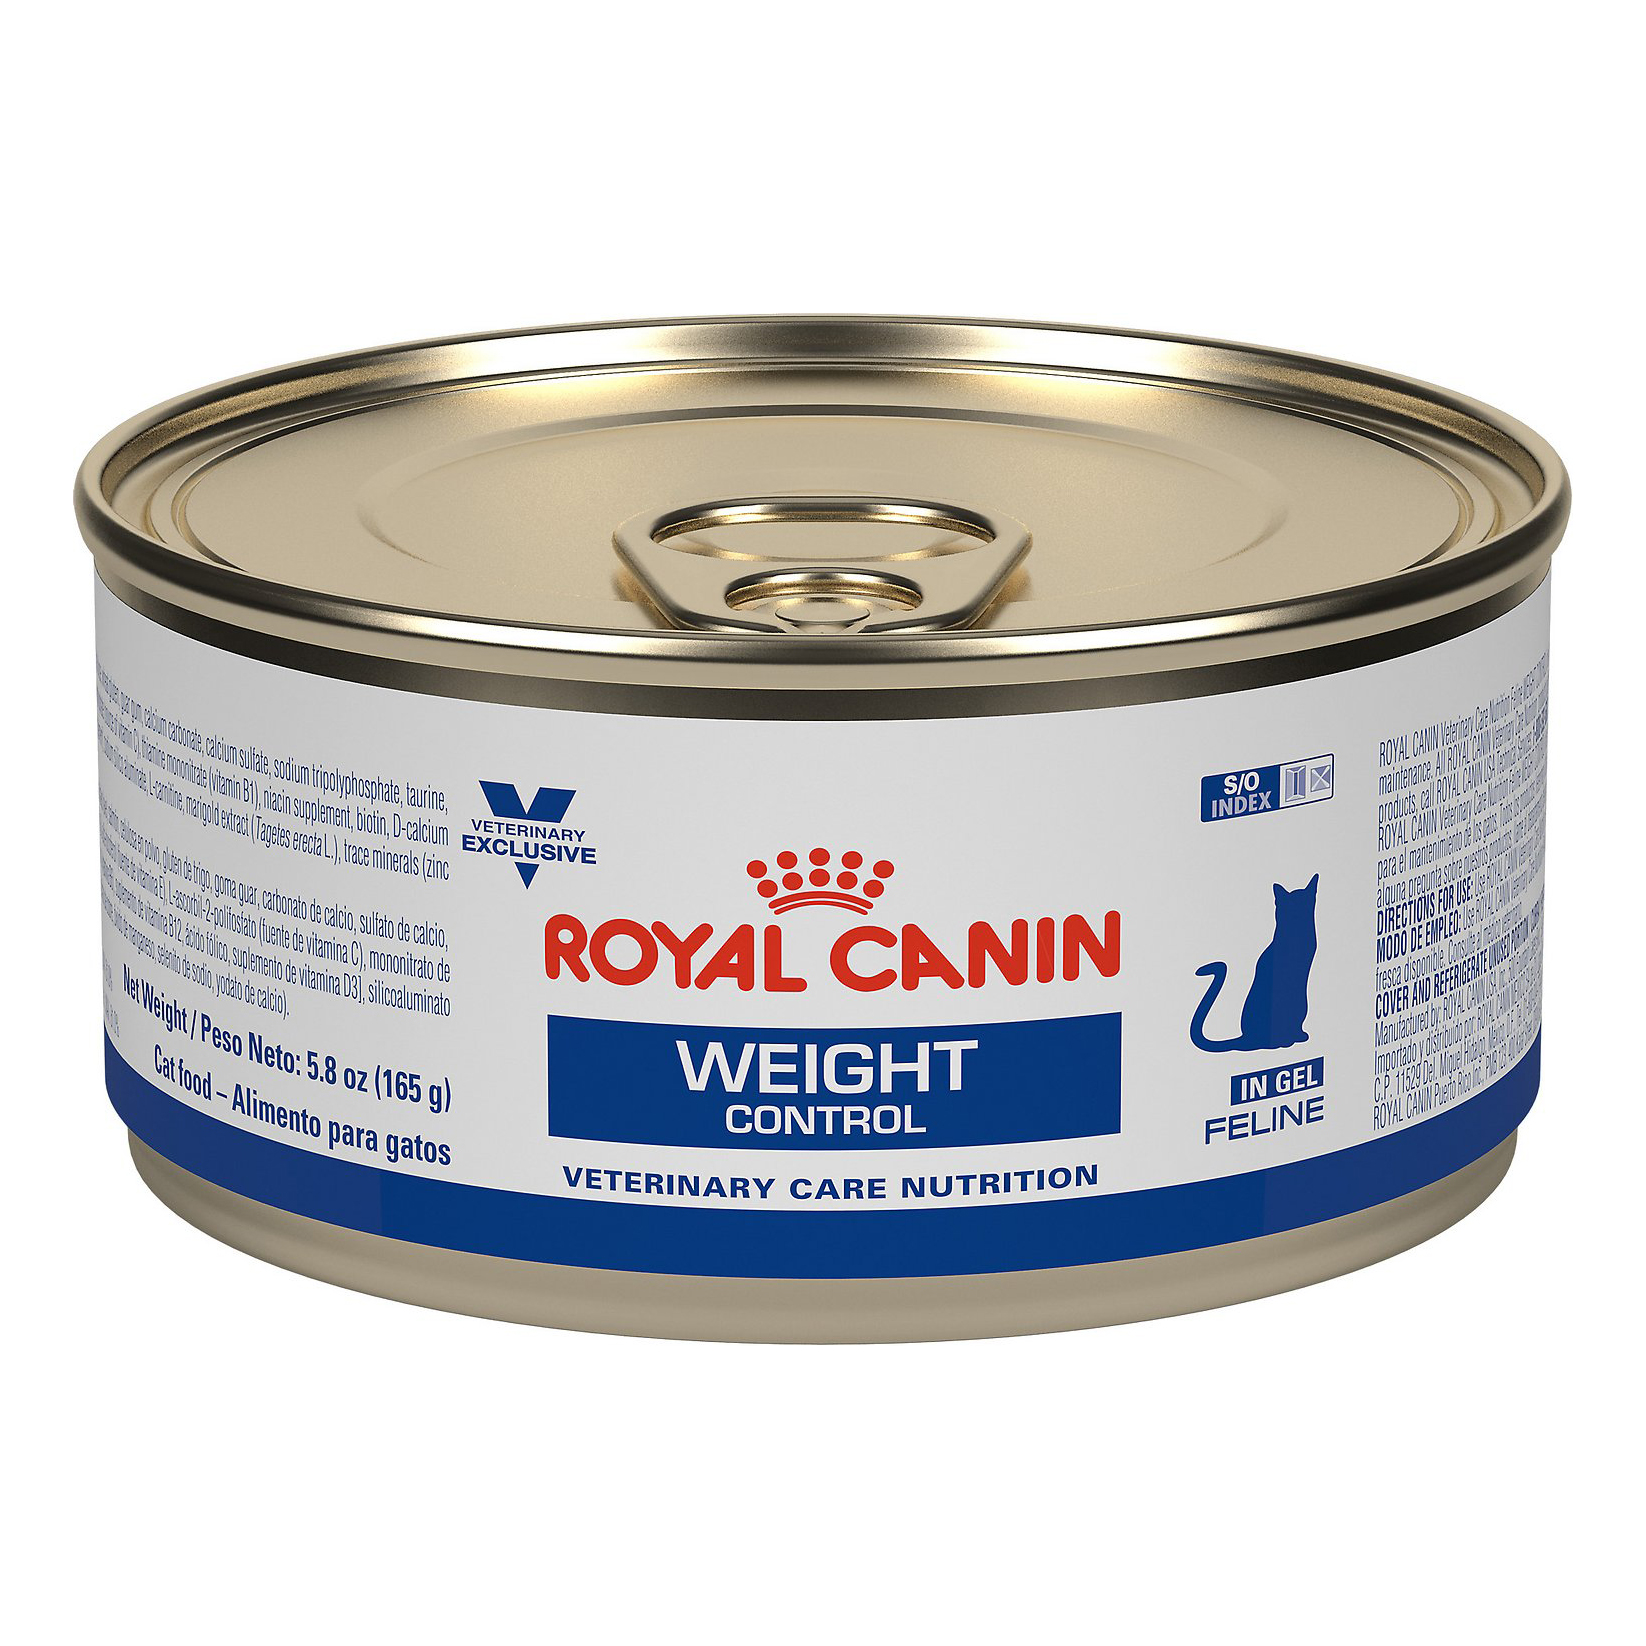 royal-canin-veterinary-diet-weight-control-formula-canned-cat-food